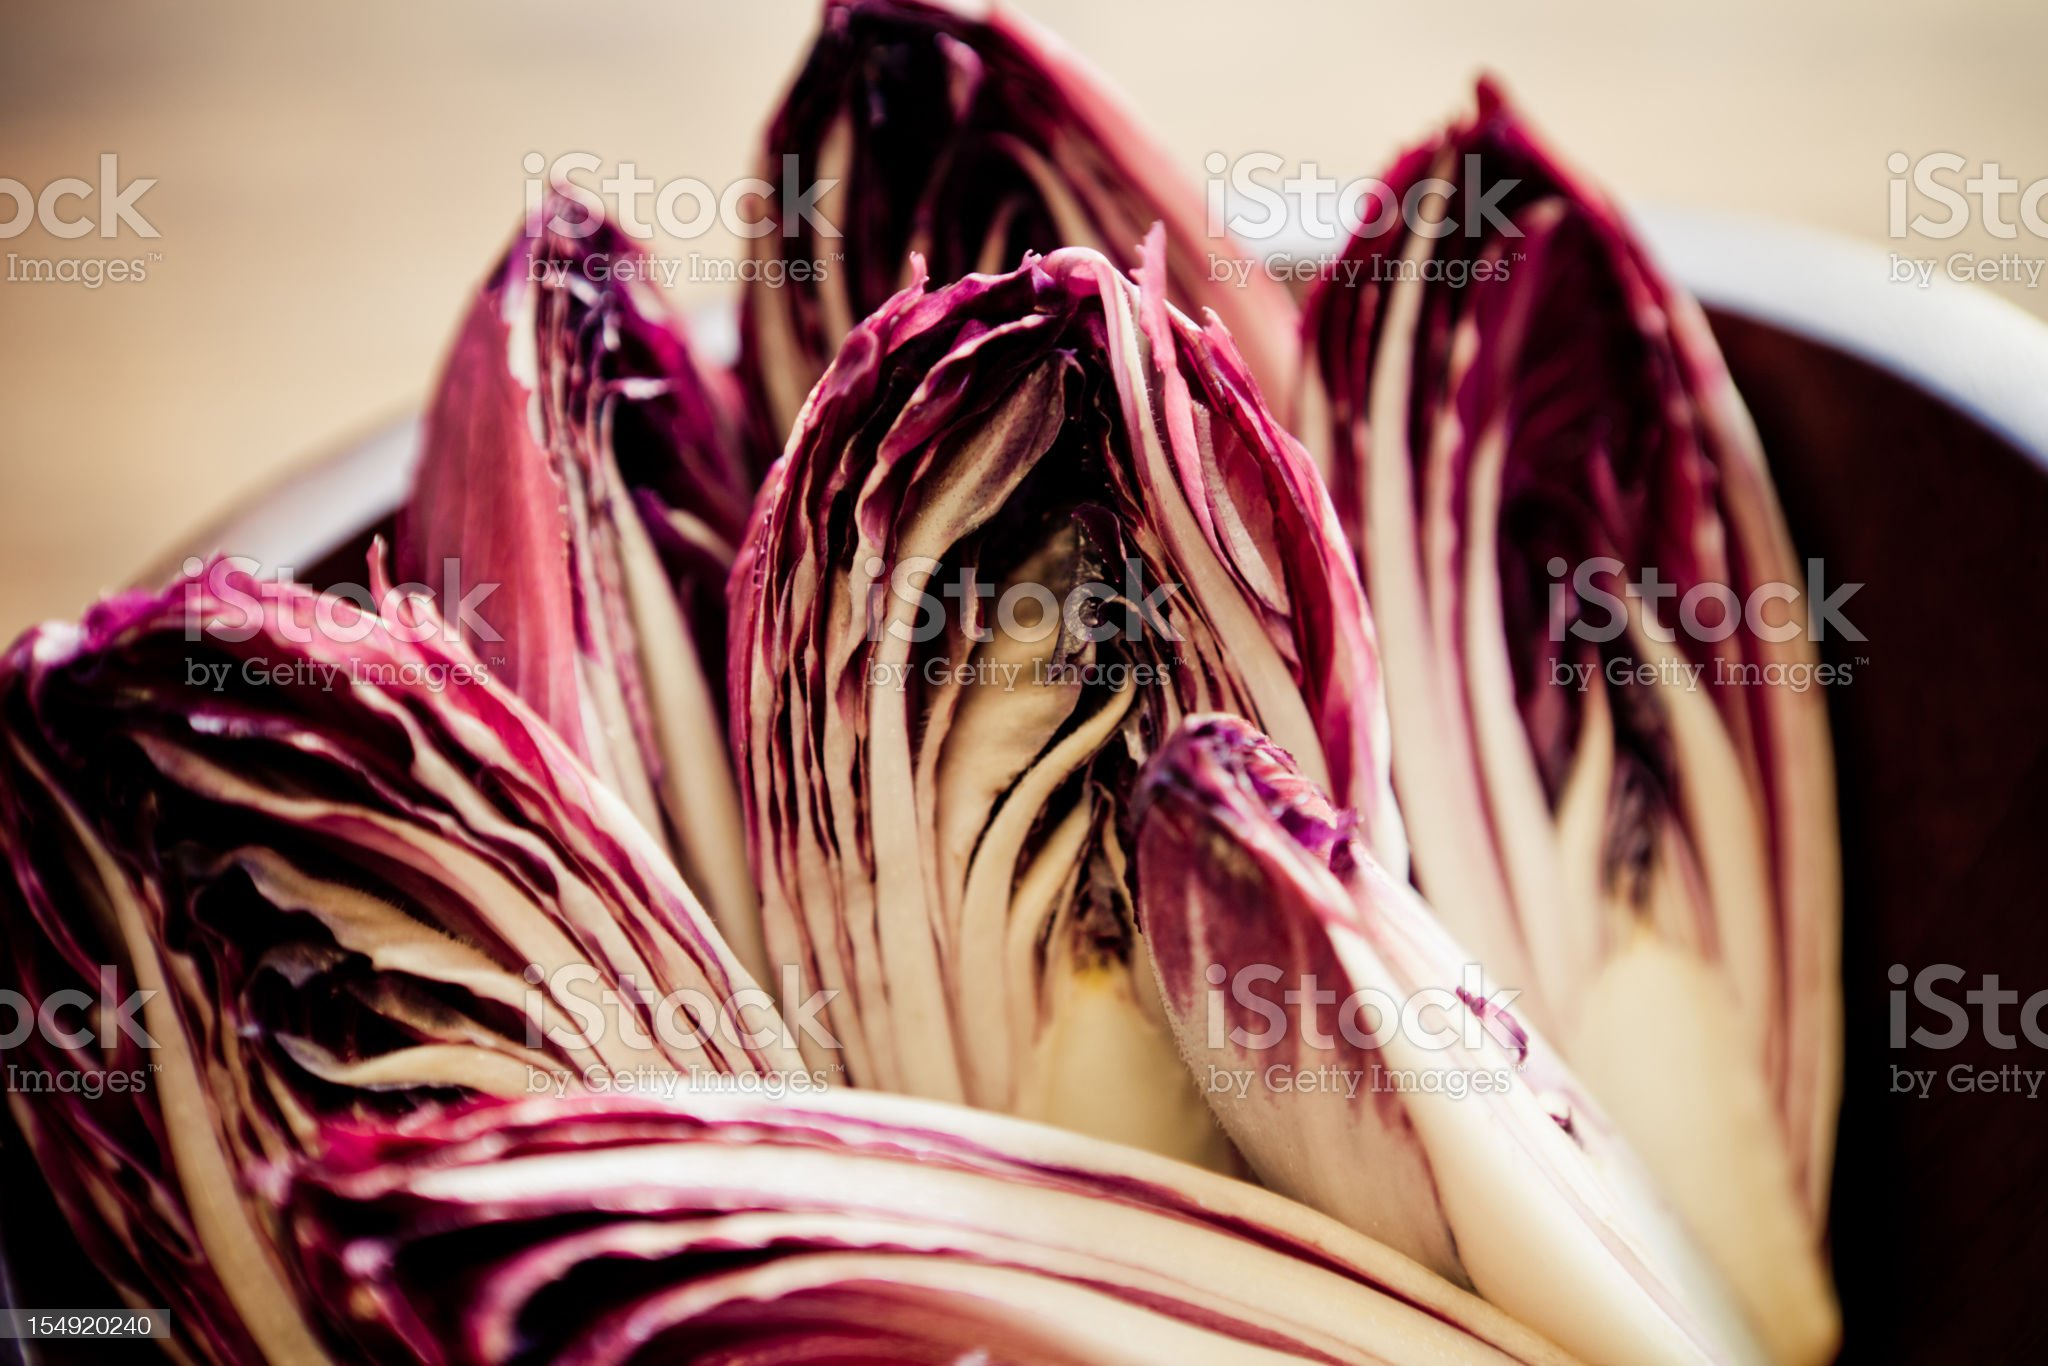 Red Endives royalty-free stock photo